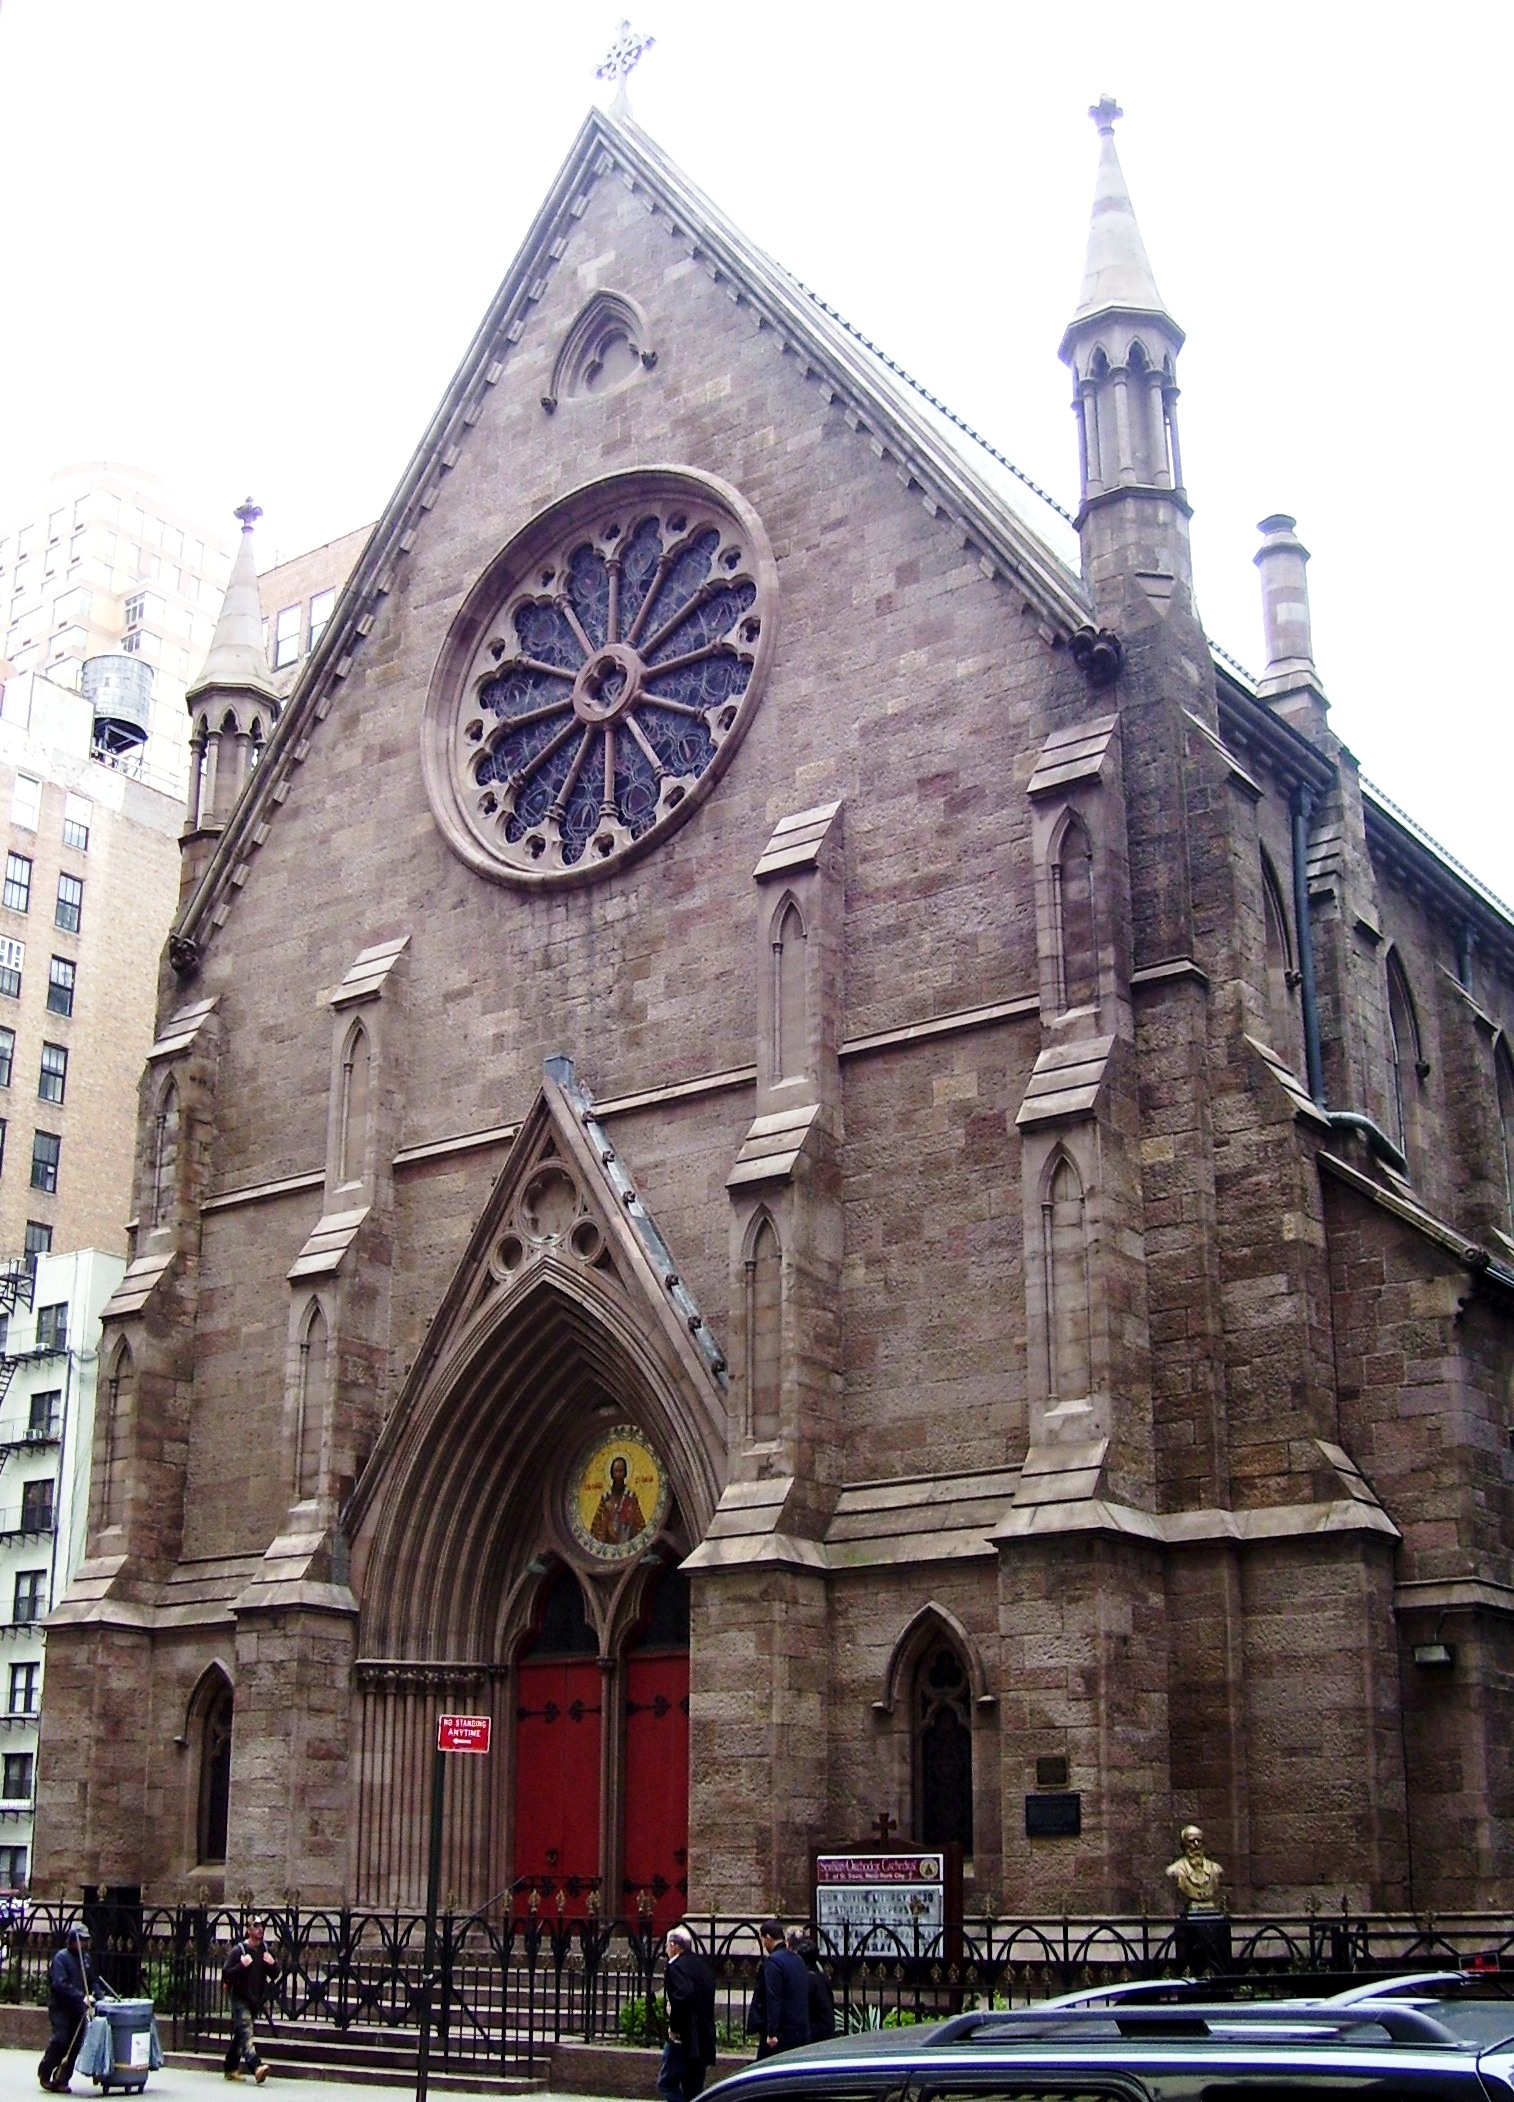 The landmark Richard Upjohn cathedral was located in Manhattan on 25th street and Broadway, Beyond My Ken